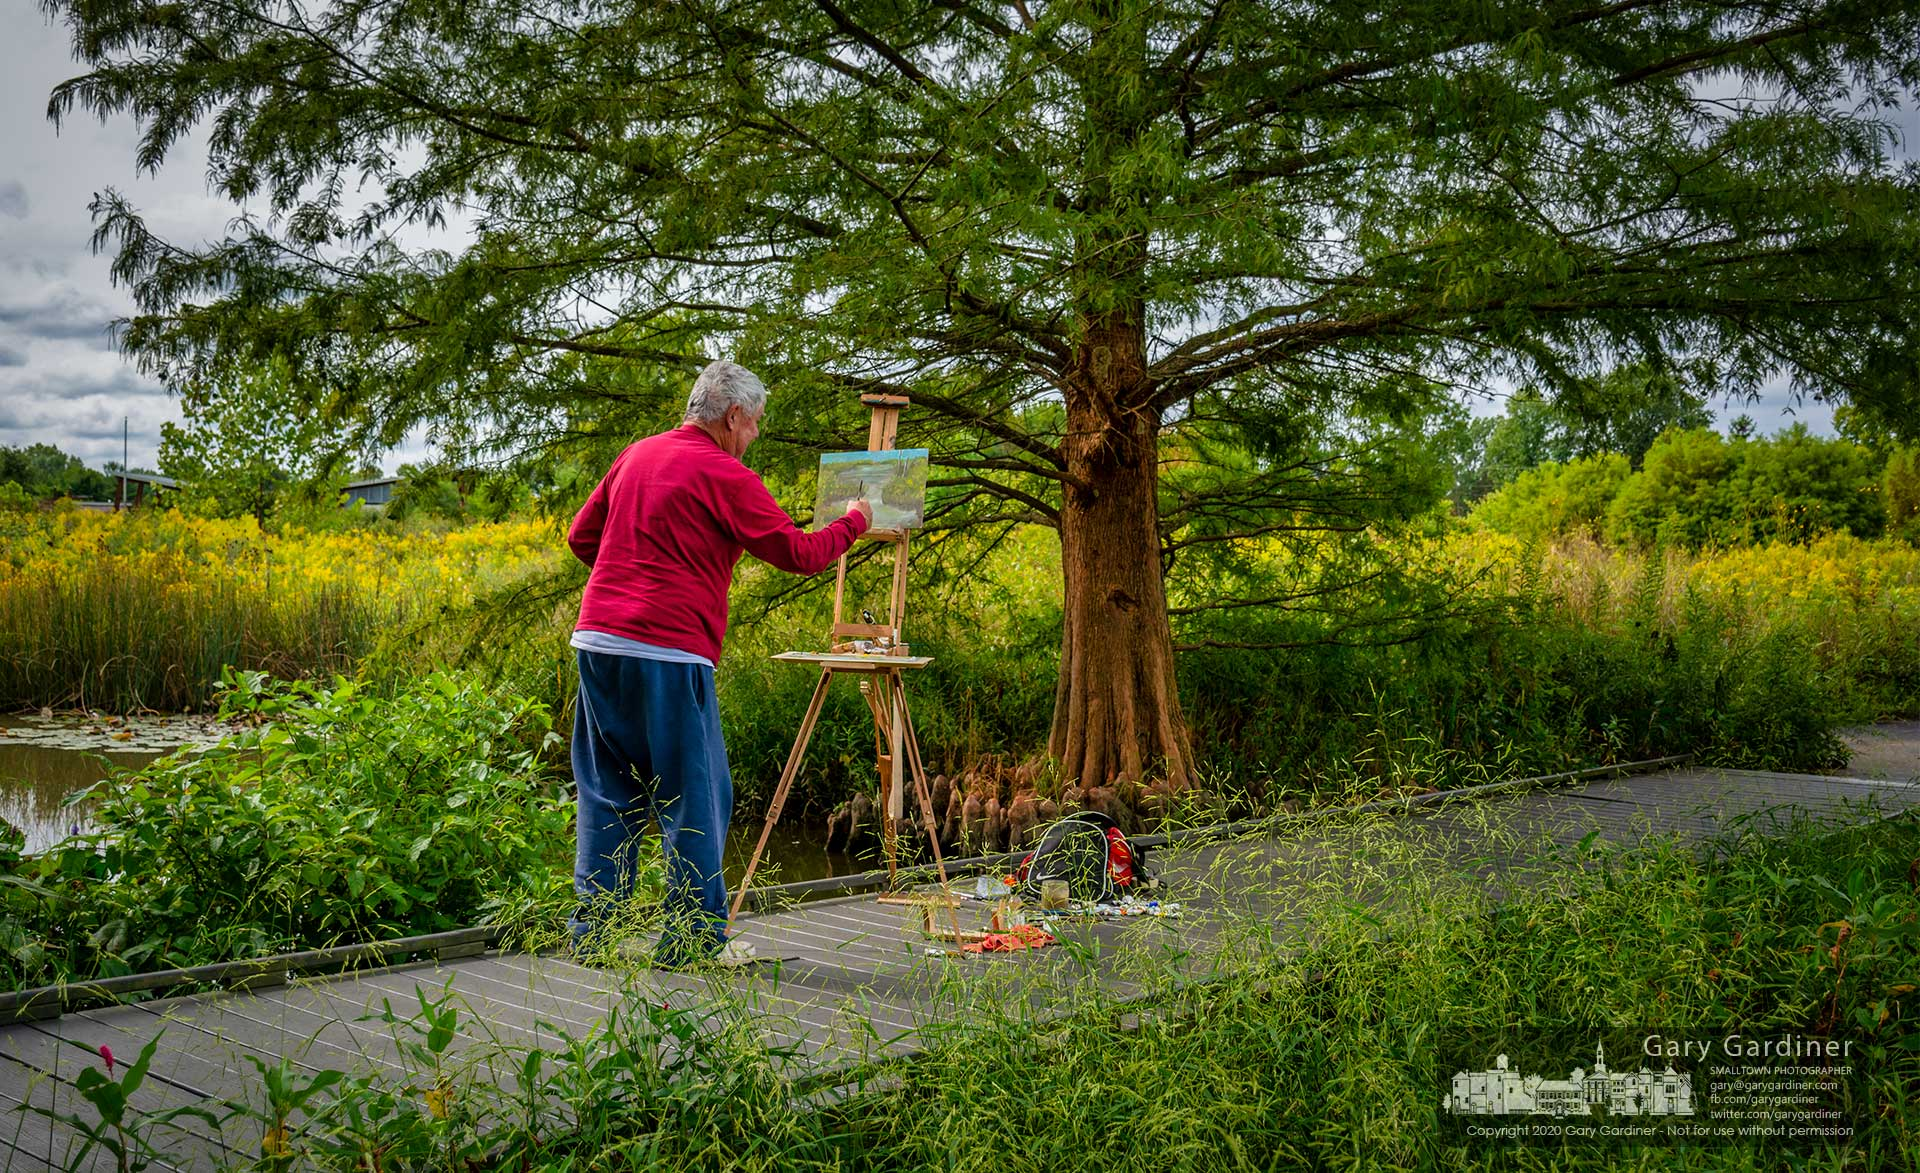 A plein air artist completes his canvas of a section of the wetlands at Highlands Park just in time for his lunch. My Final Photo for Sept. 14, 2020.